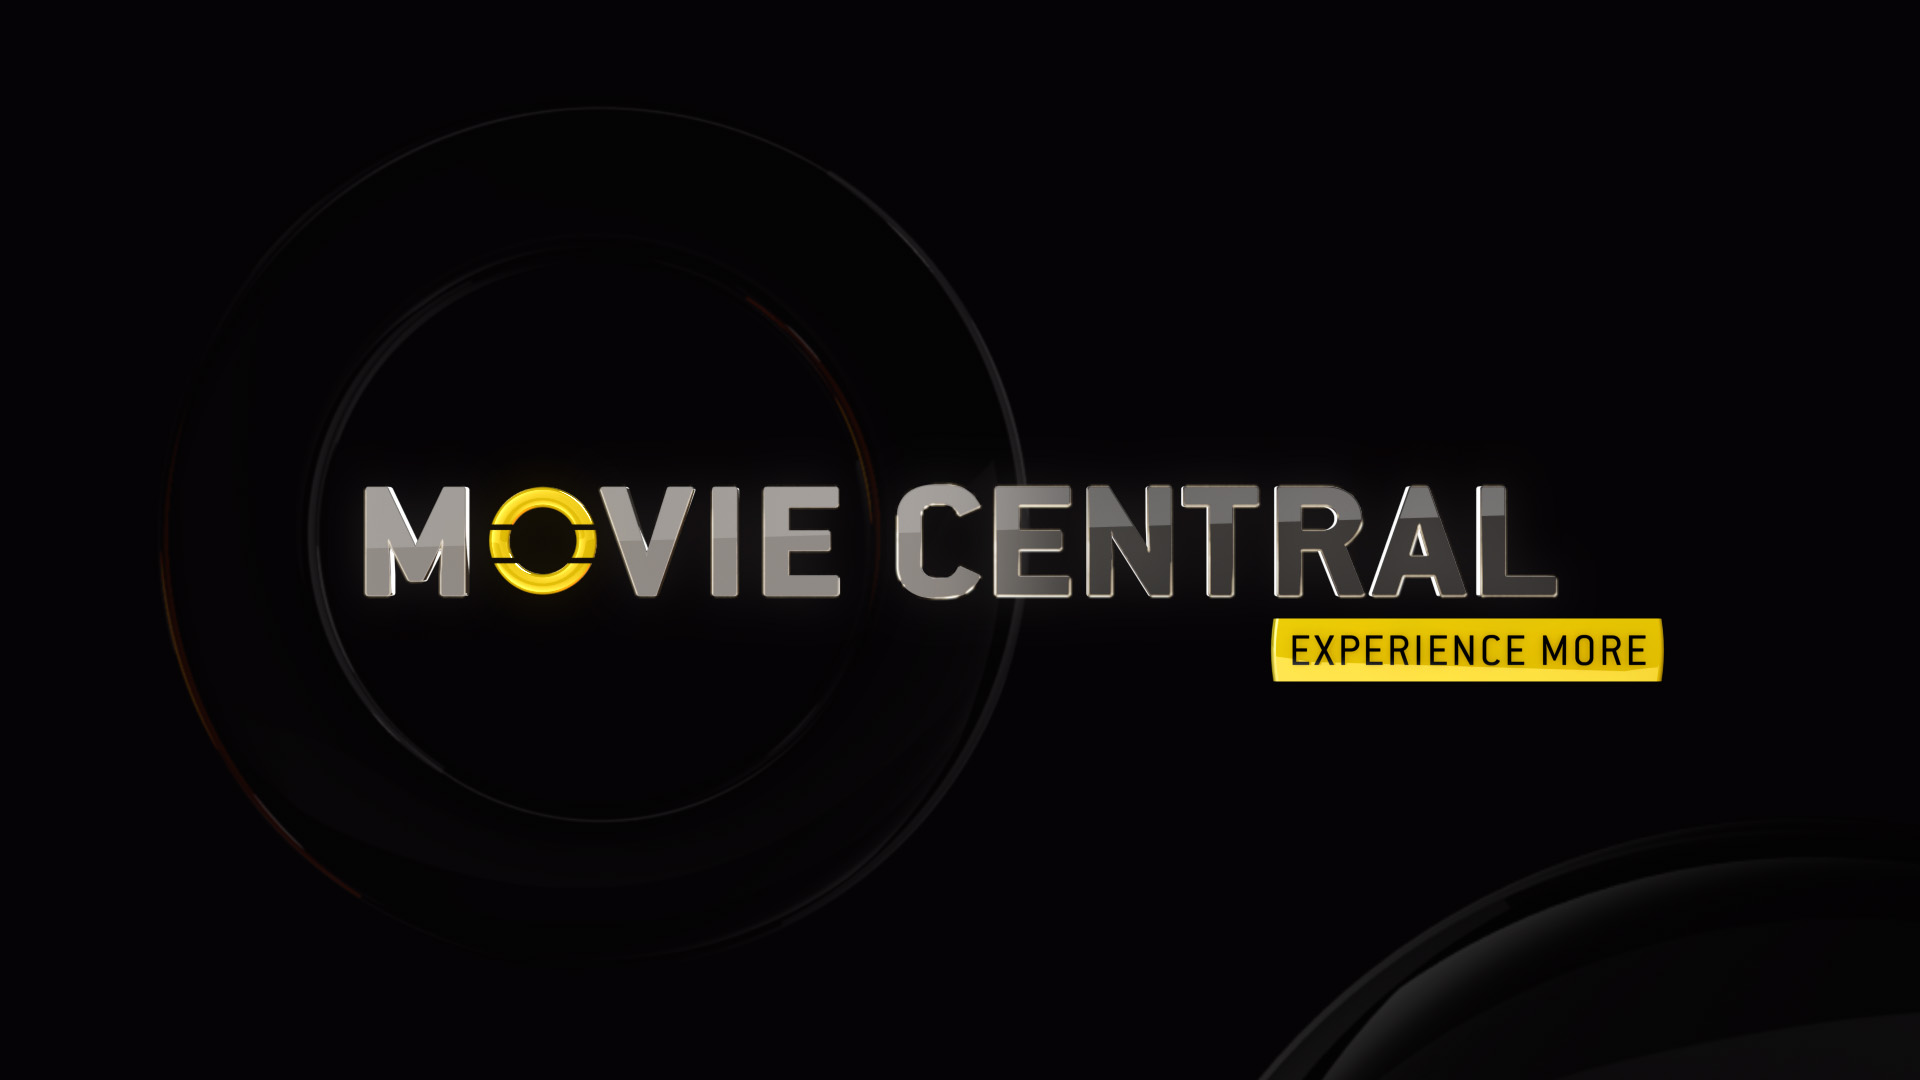 moviecentral_rebrand_image06